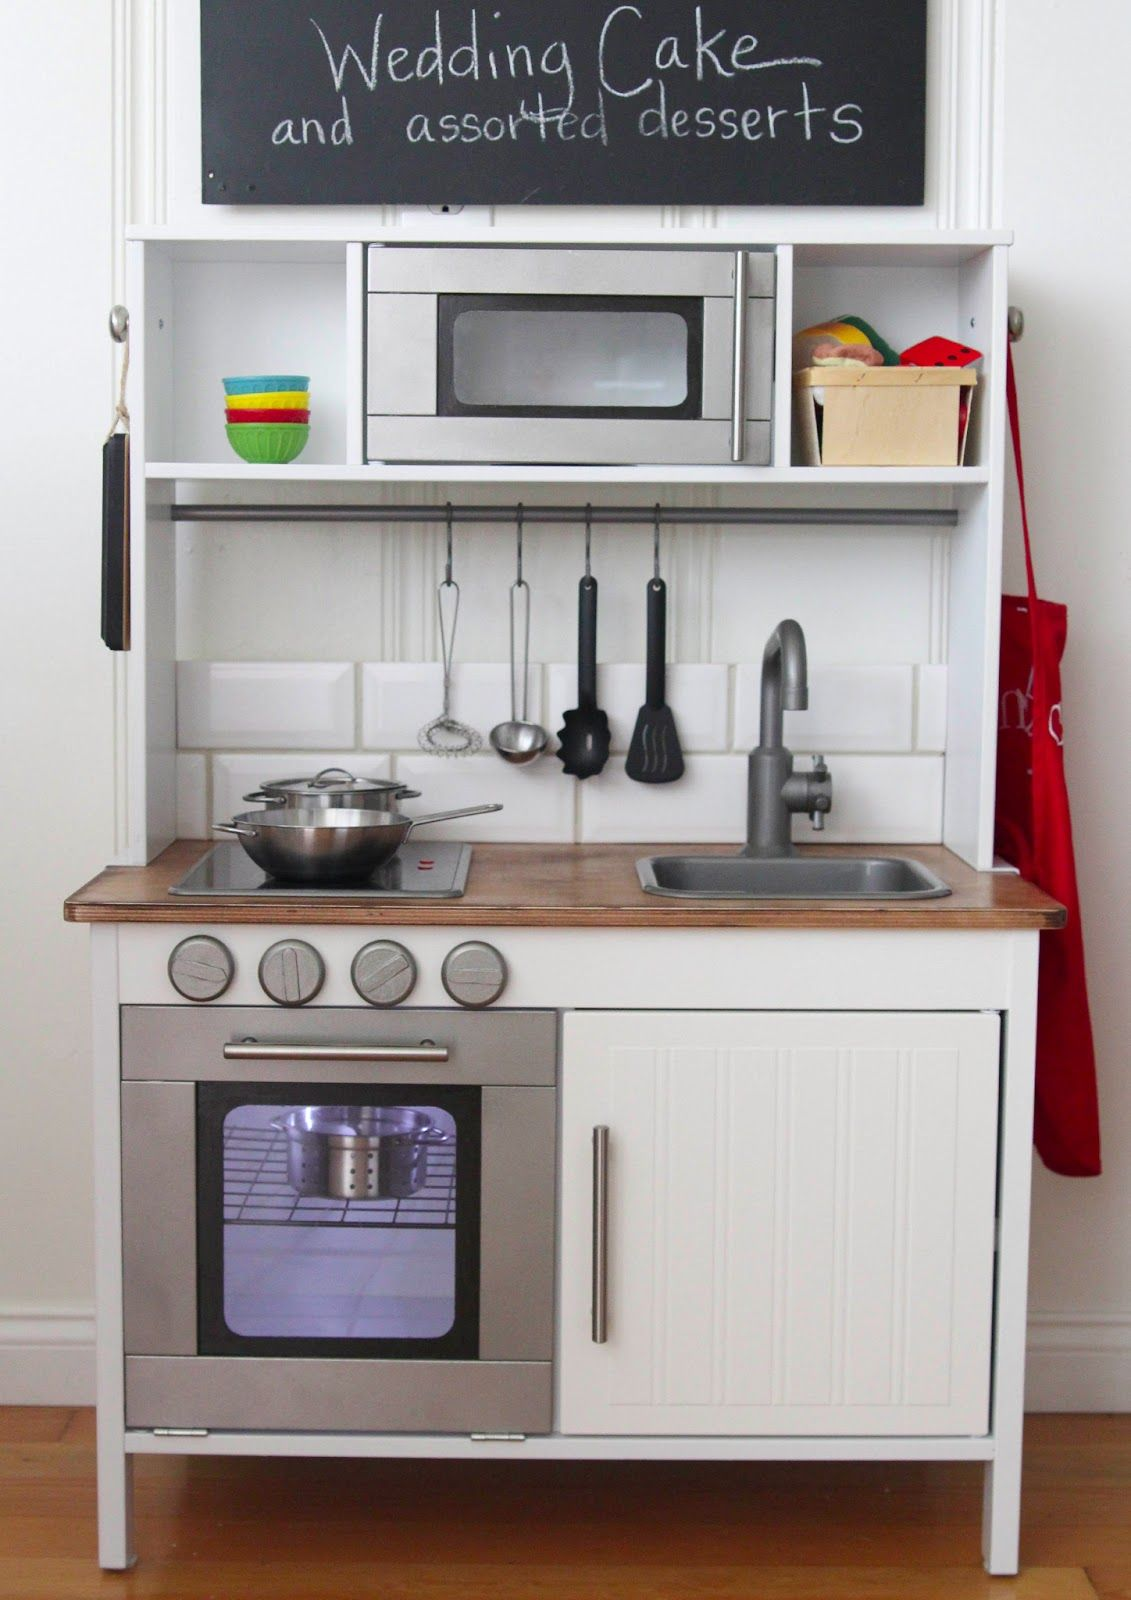 sandpaper and silly putty: kiddo kitchen remodel | casetes ...